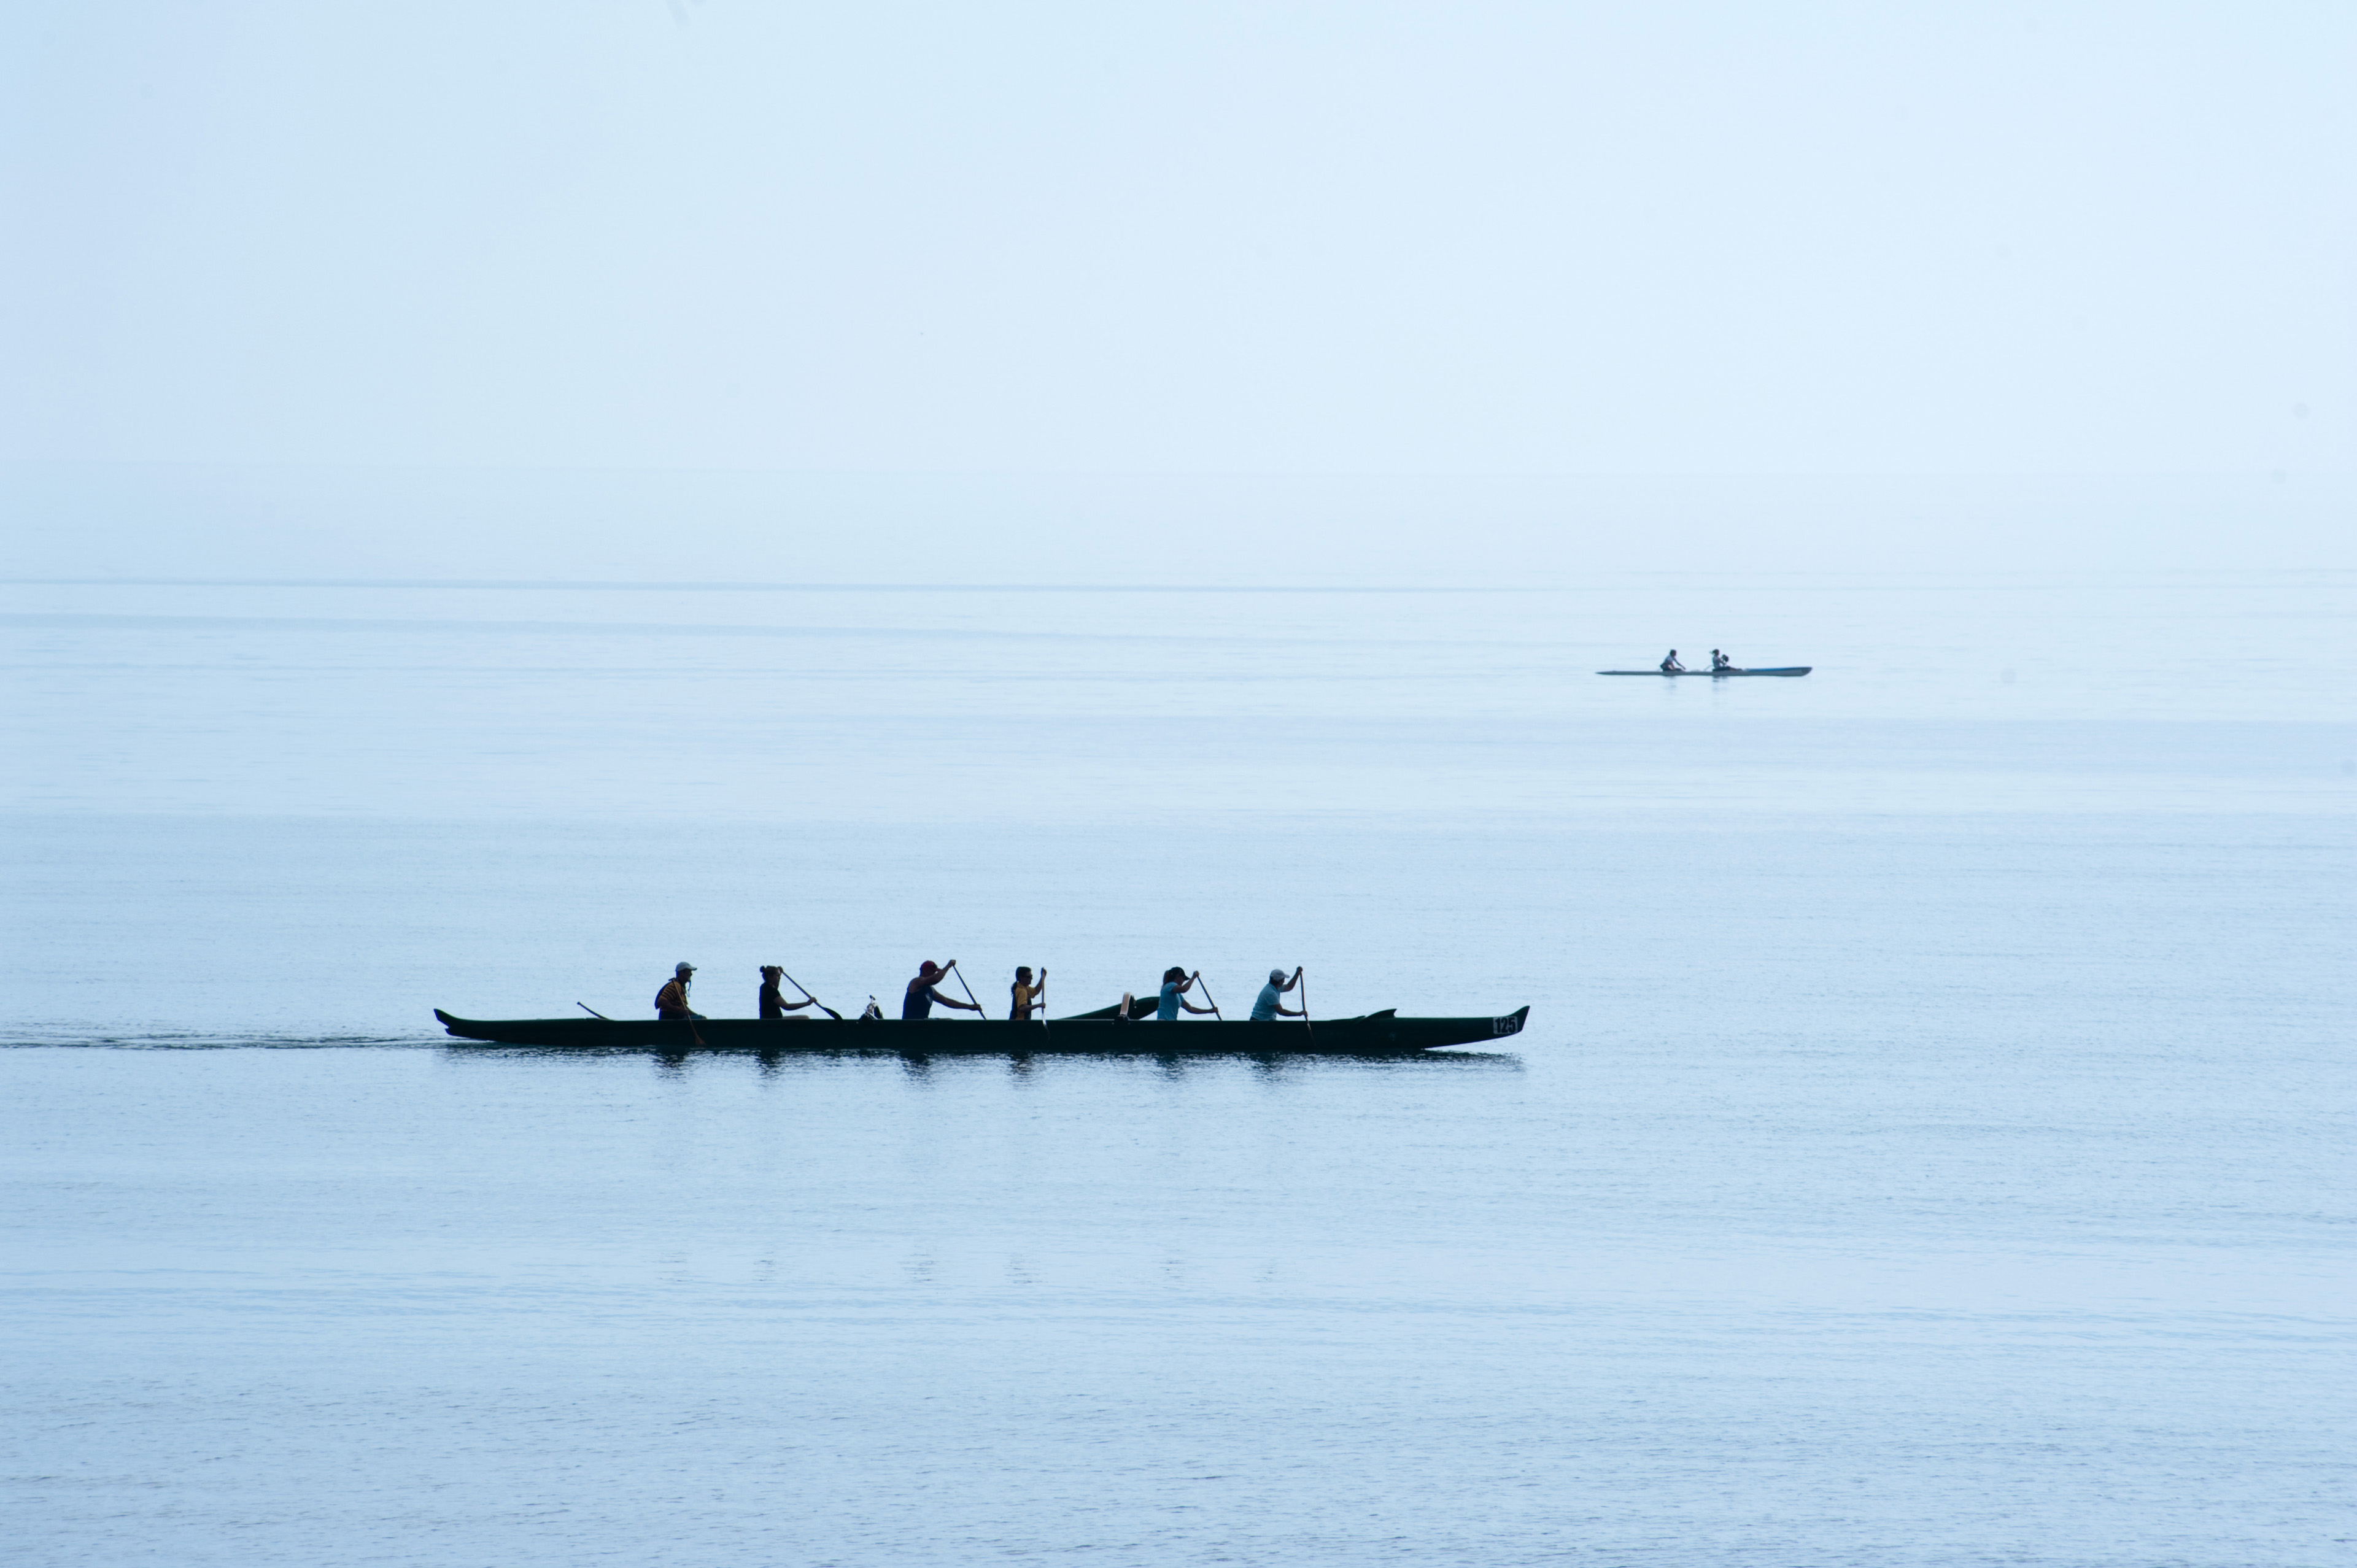 Team of rowers competing in a race in a six man canoe silhouetted against a calm ocean as they paddle furiously to gain speed